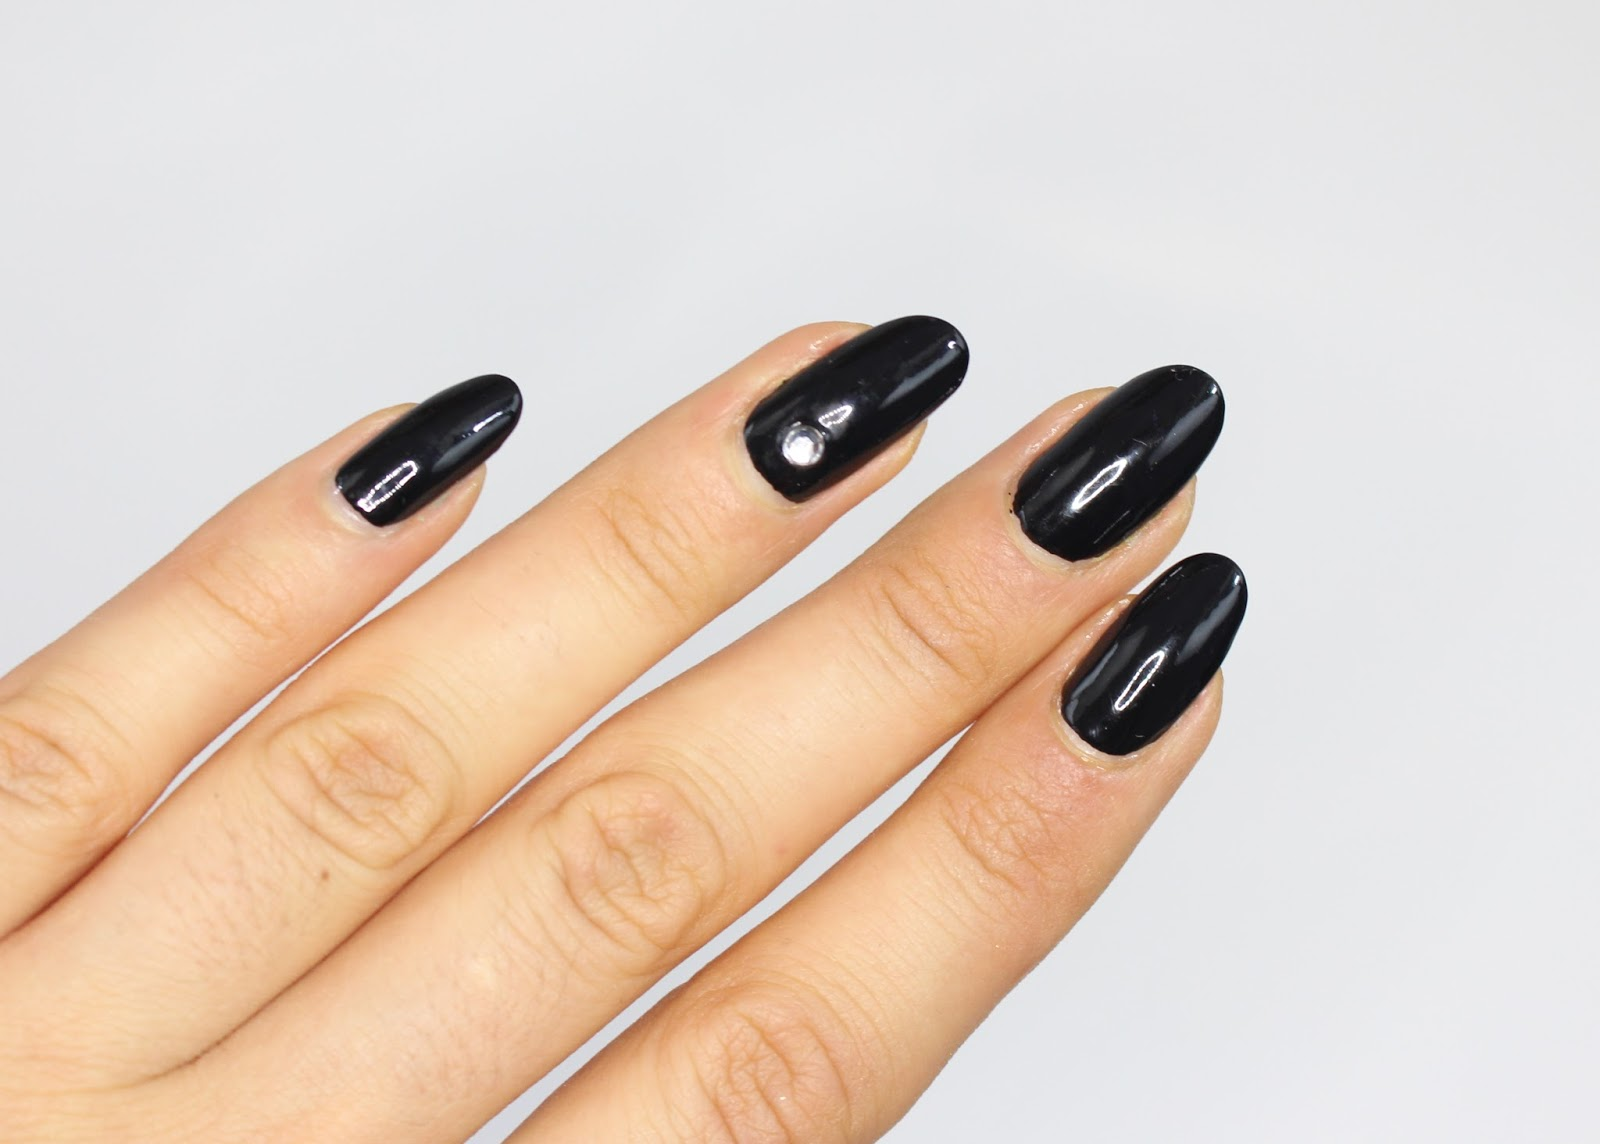 ManiMonday: Licorice Nails with a Jewel Accent - BTW